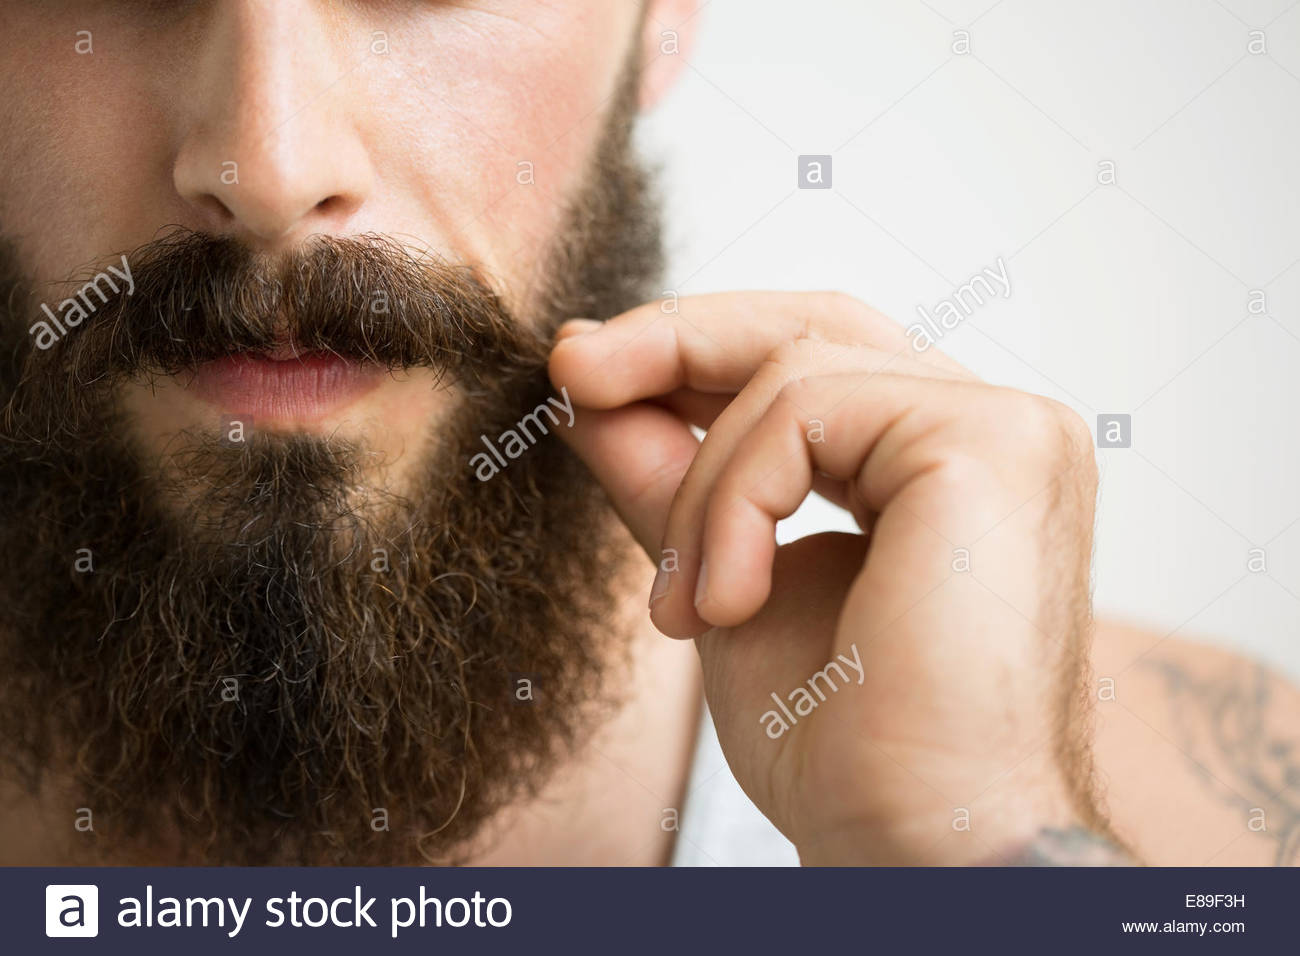 Close up of man touching mustache - Stock Image